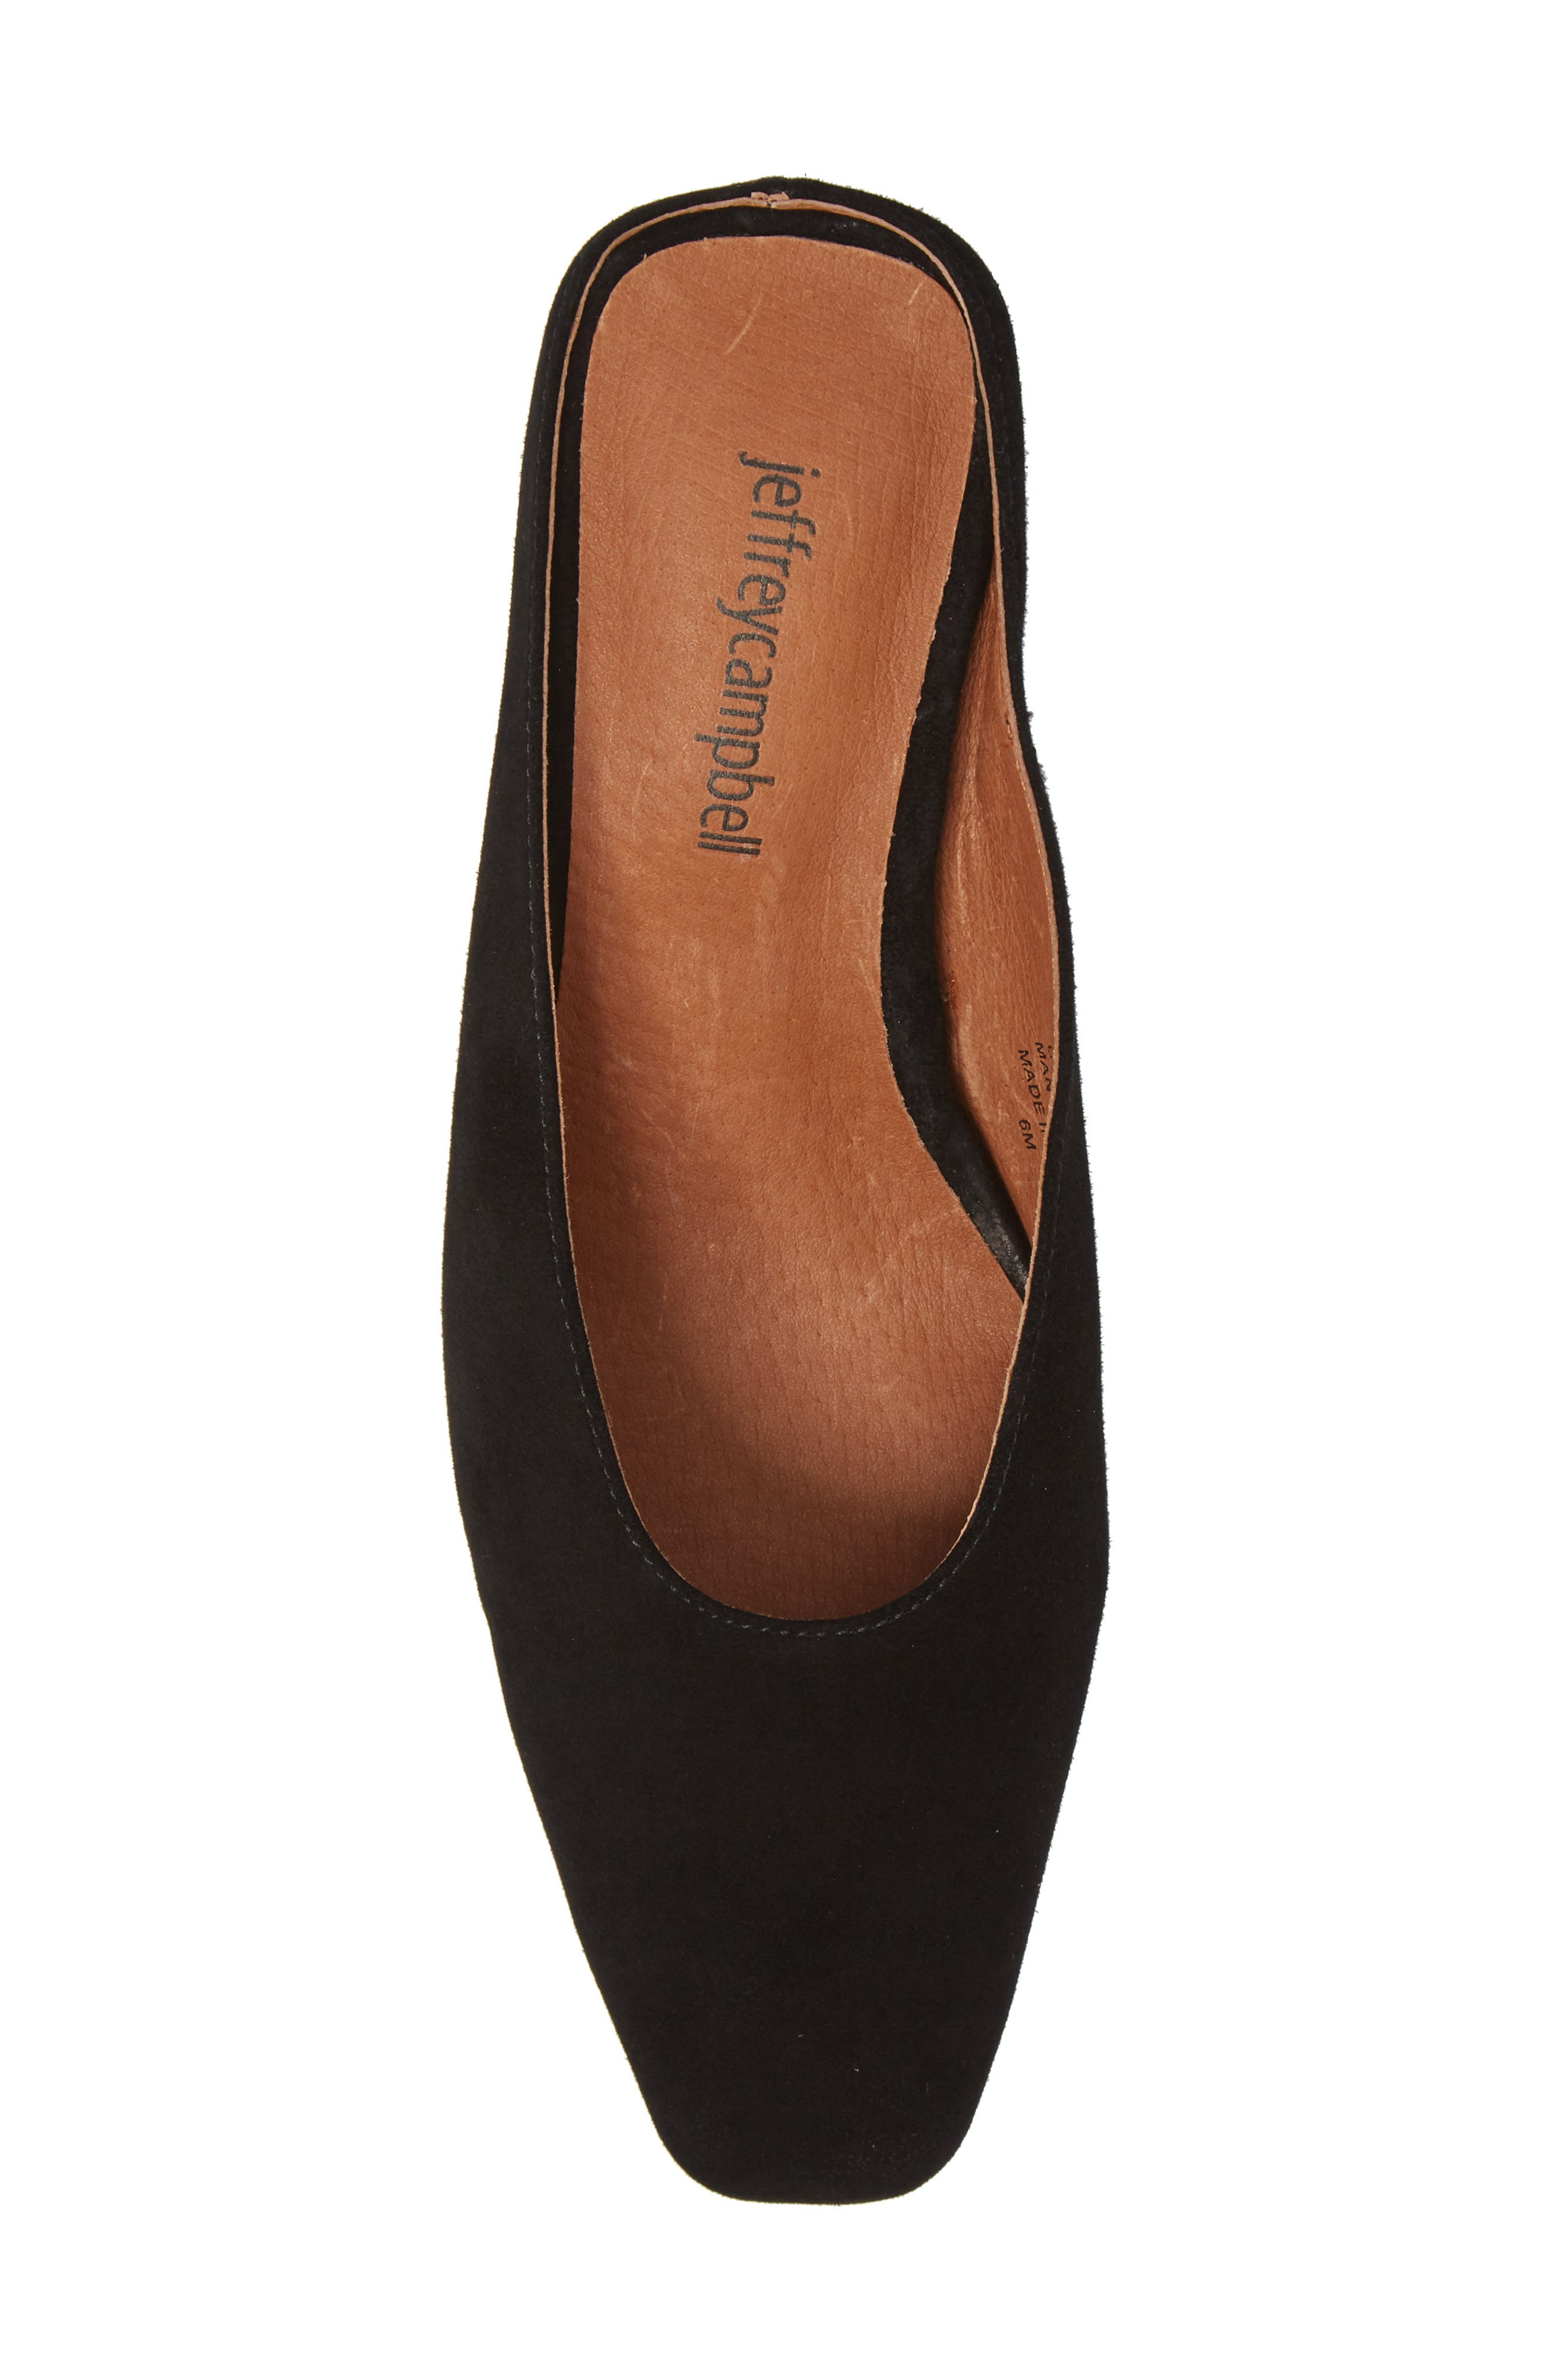 JEFFREY CAMPBELL,                             Cryptic Statement Heel Mule,                             Alternate thumbnail 5, color,                             005